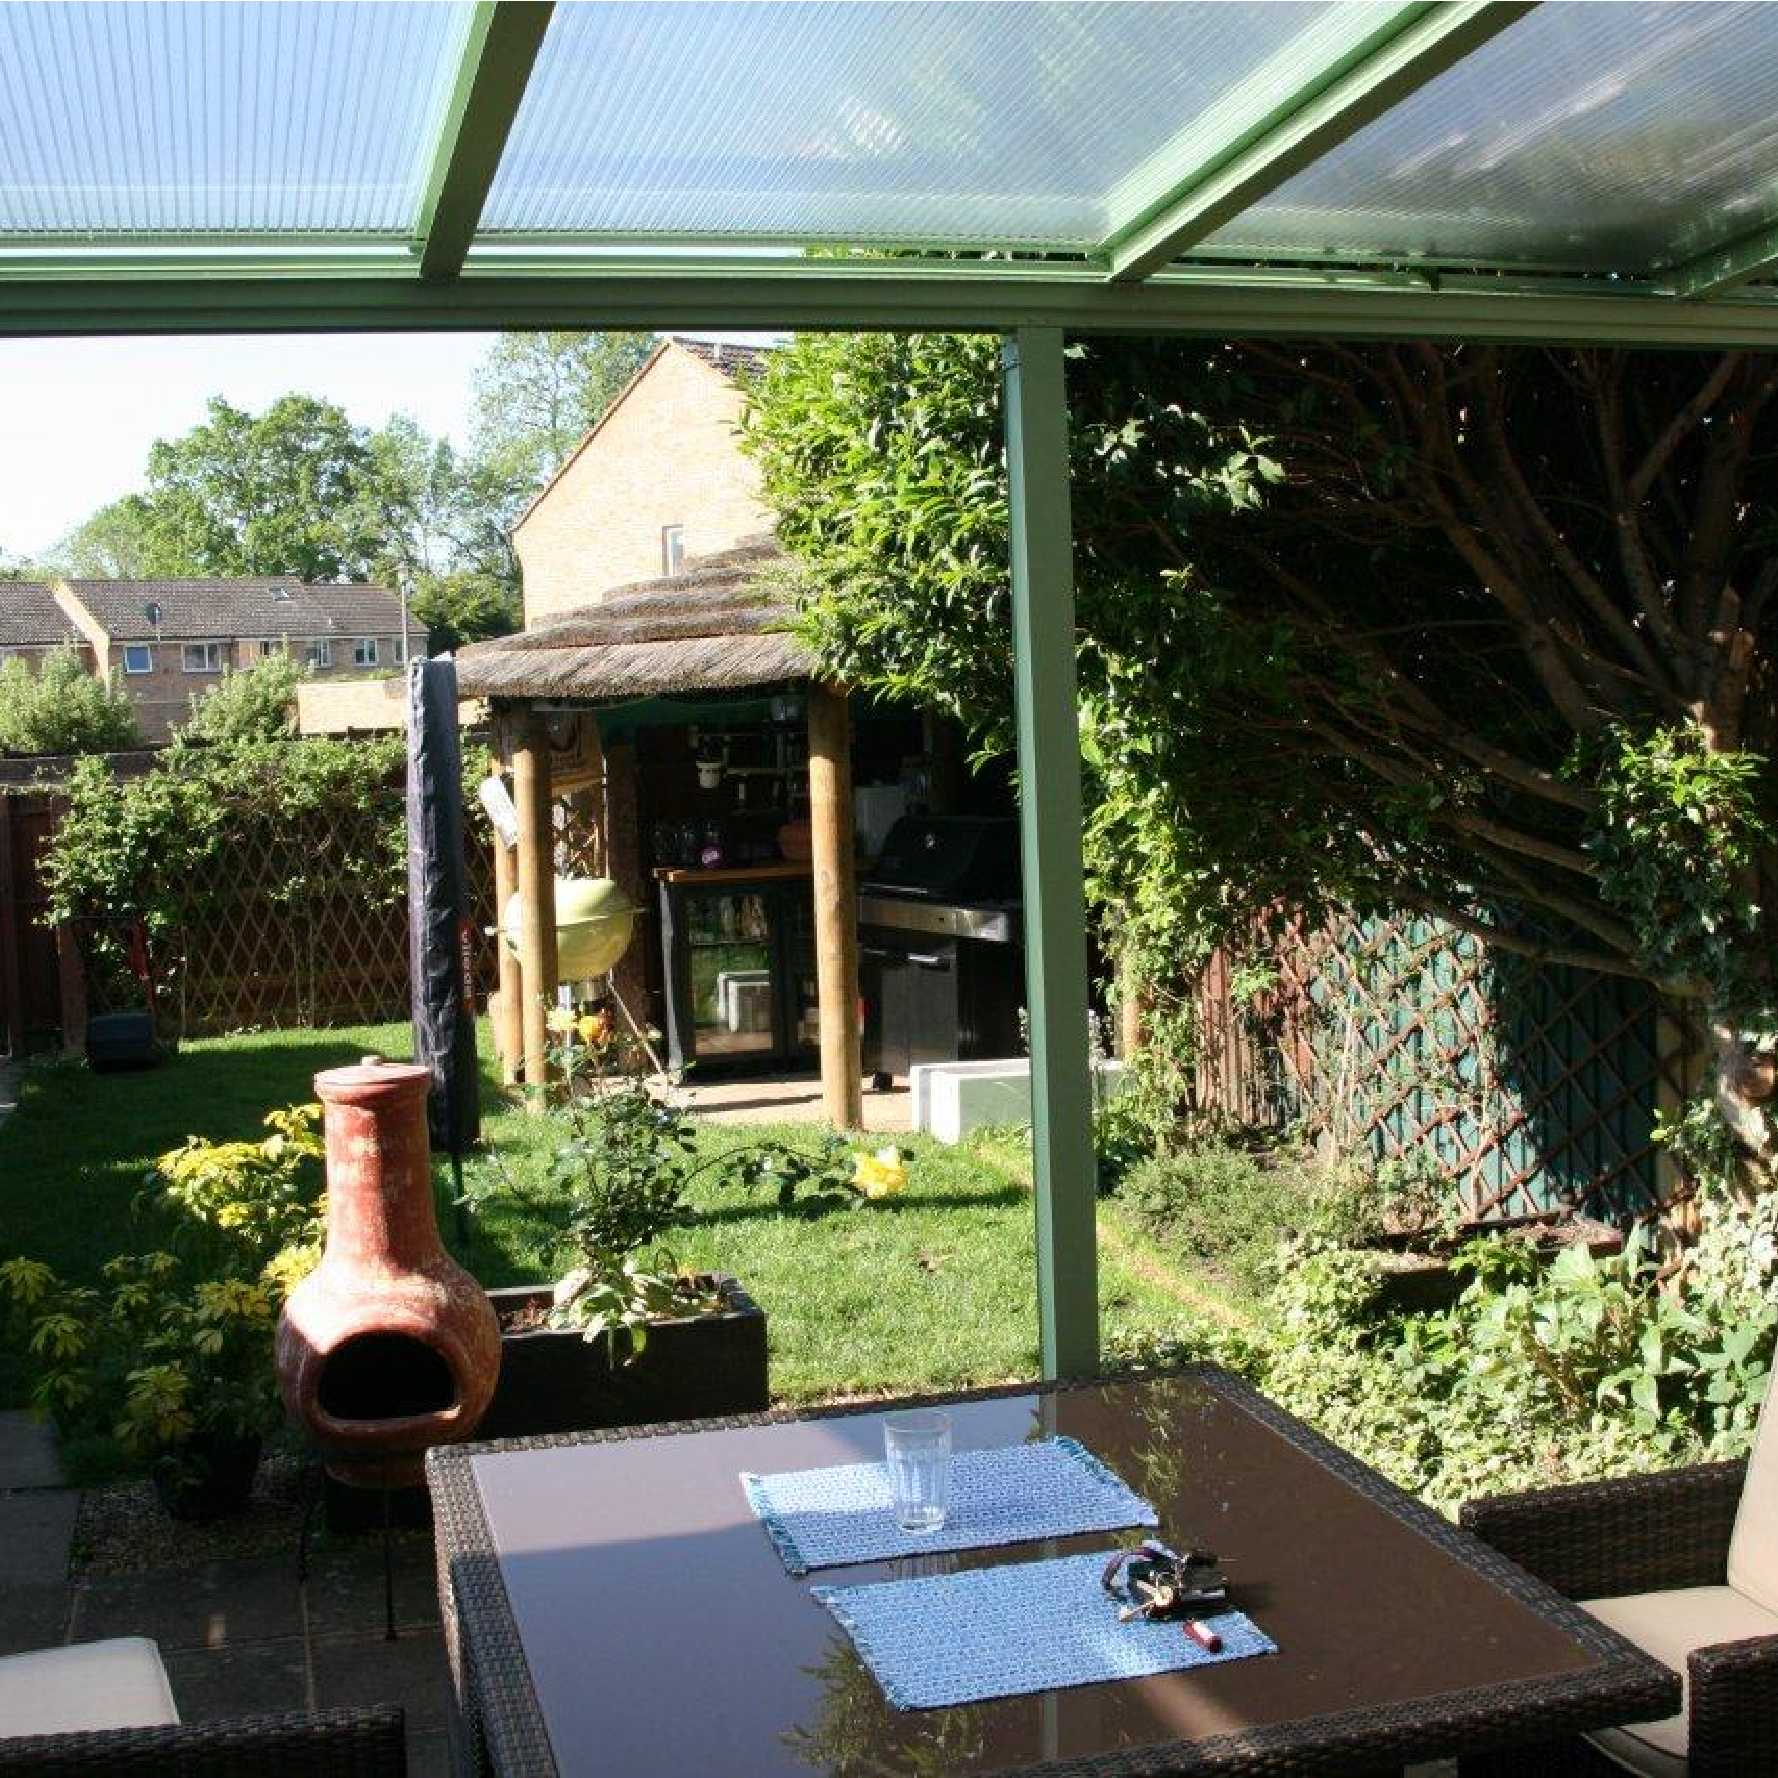 Affordable Omega Smart White Lean-To Canopy with 16mm Polycarbonate Glazing - 12.0m (W) x 2.0m (P), (5) Supporting Posts